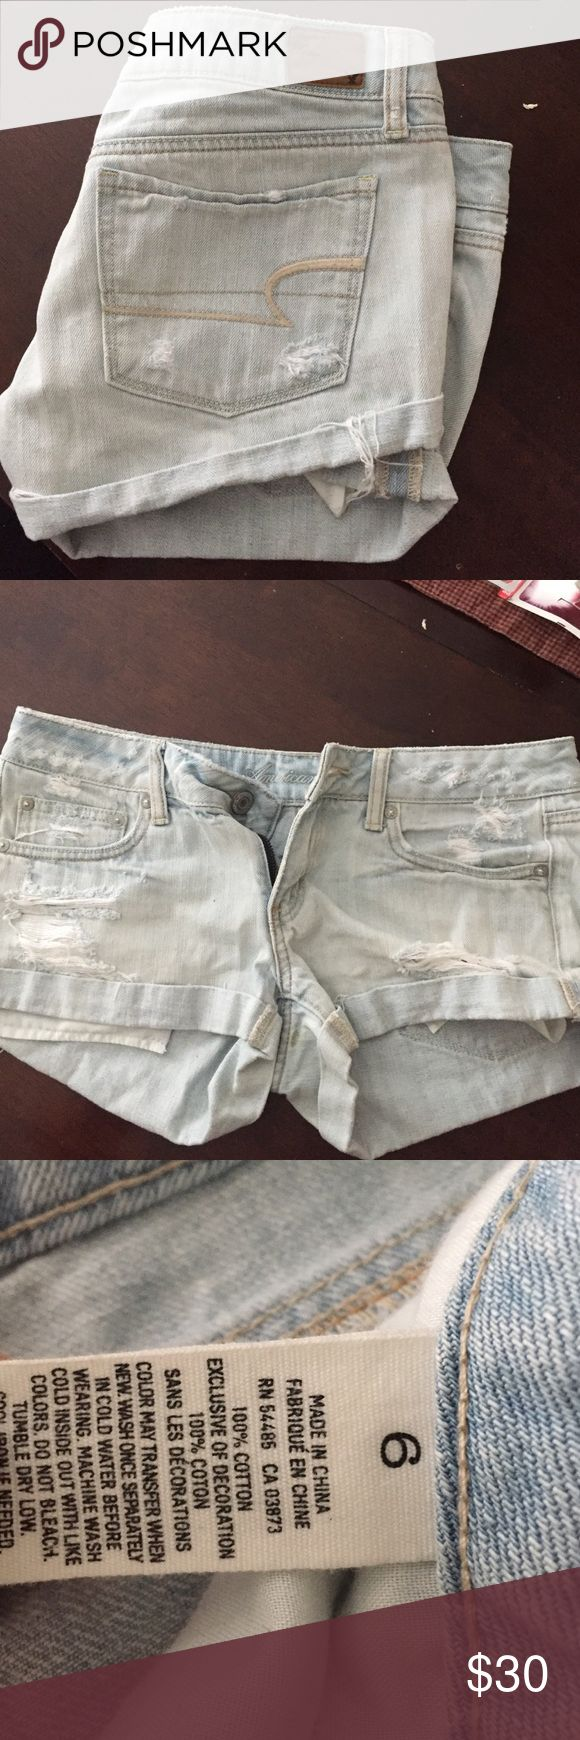 American eagle shorts American Eagle light wash destroyed shorts. Super comfortable and in great condition. I will take reasonable offers! American Eagle Outfitters Shorts Jean Shorts